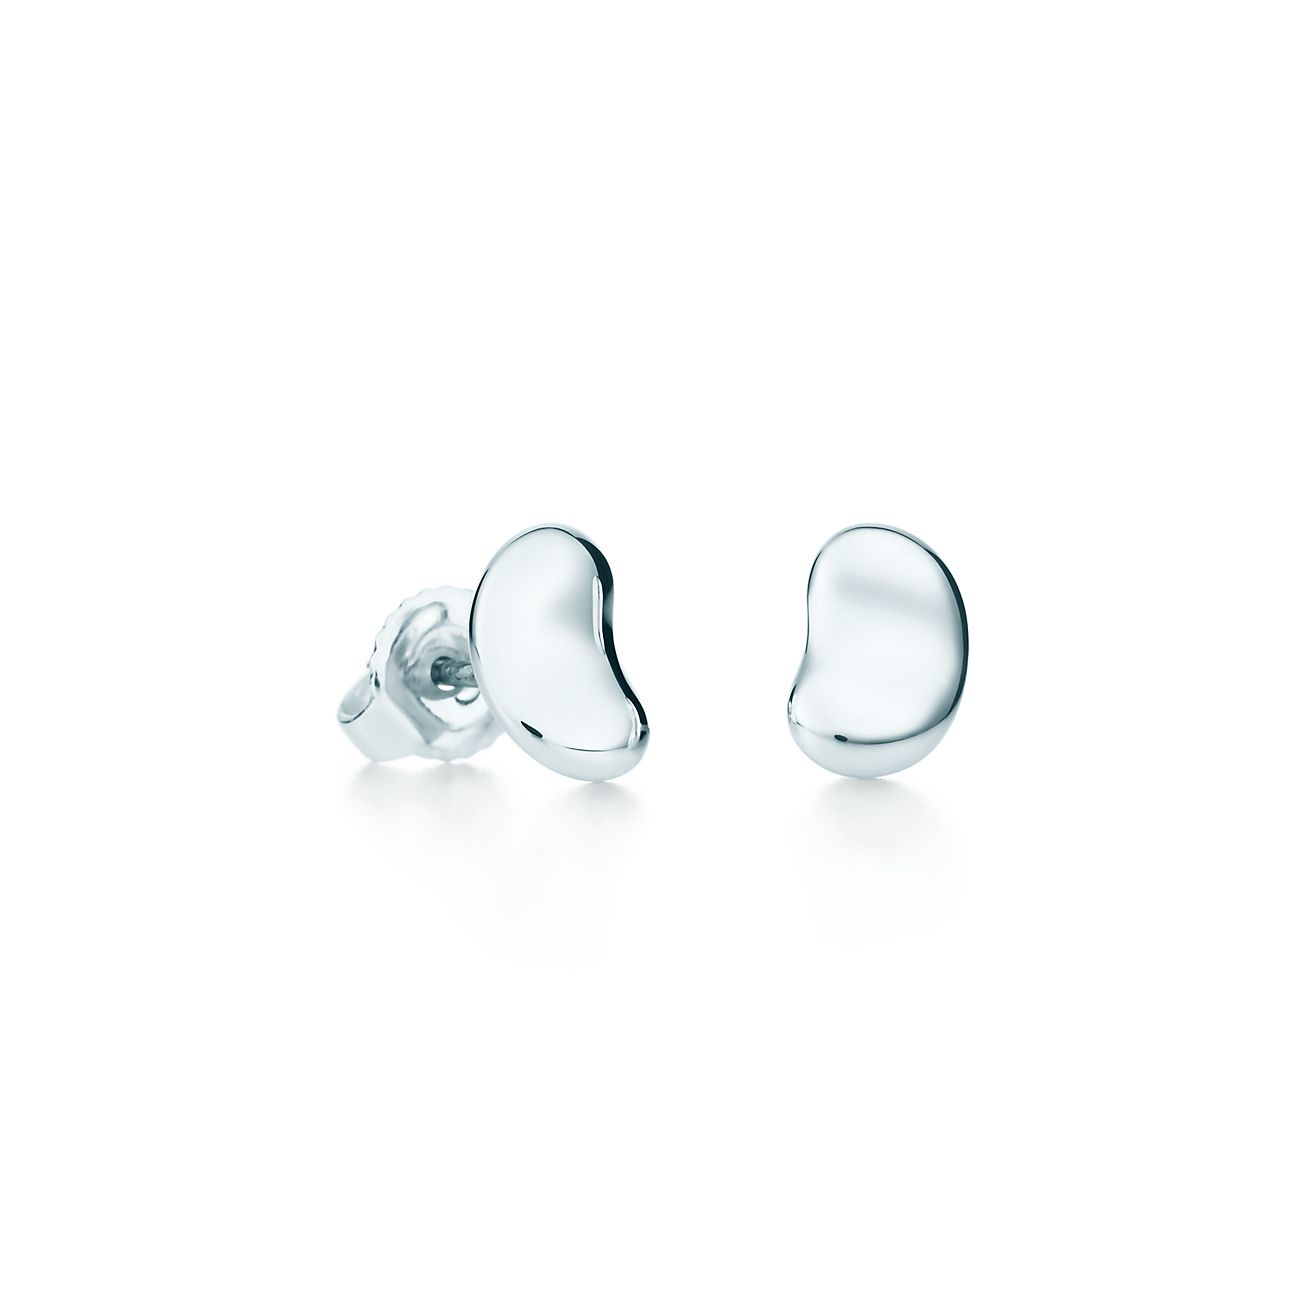 Elsa Peretti Boucles D'oreilles De Haricots En Argent Sterling - Taille 12 Mm Tiffany & Co. 0nYMVEiyV